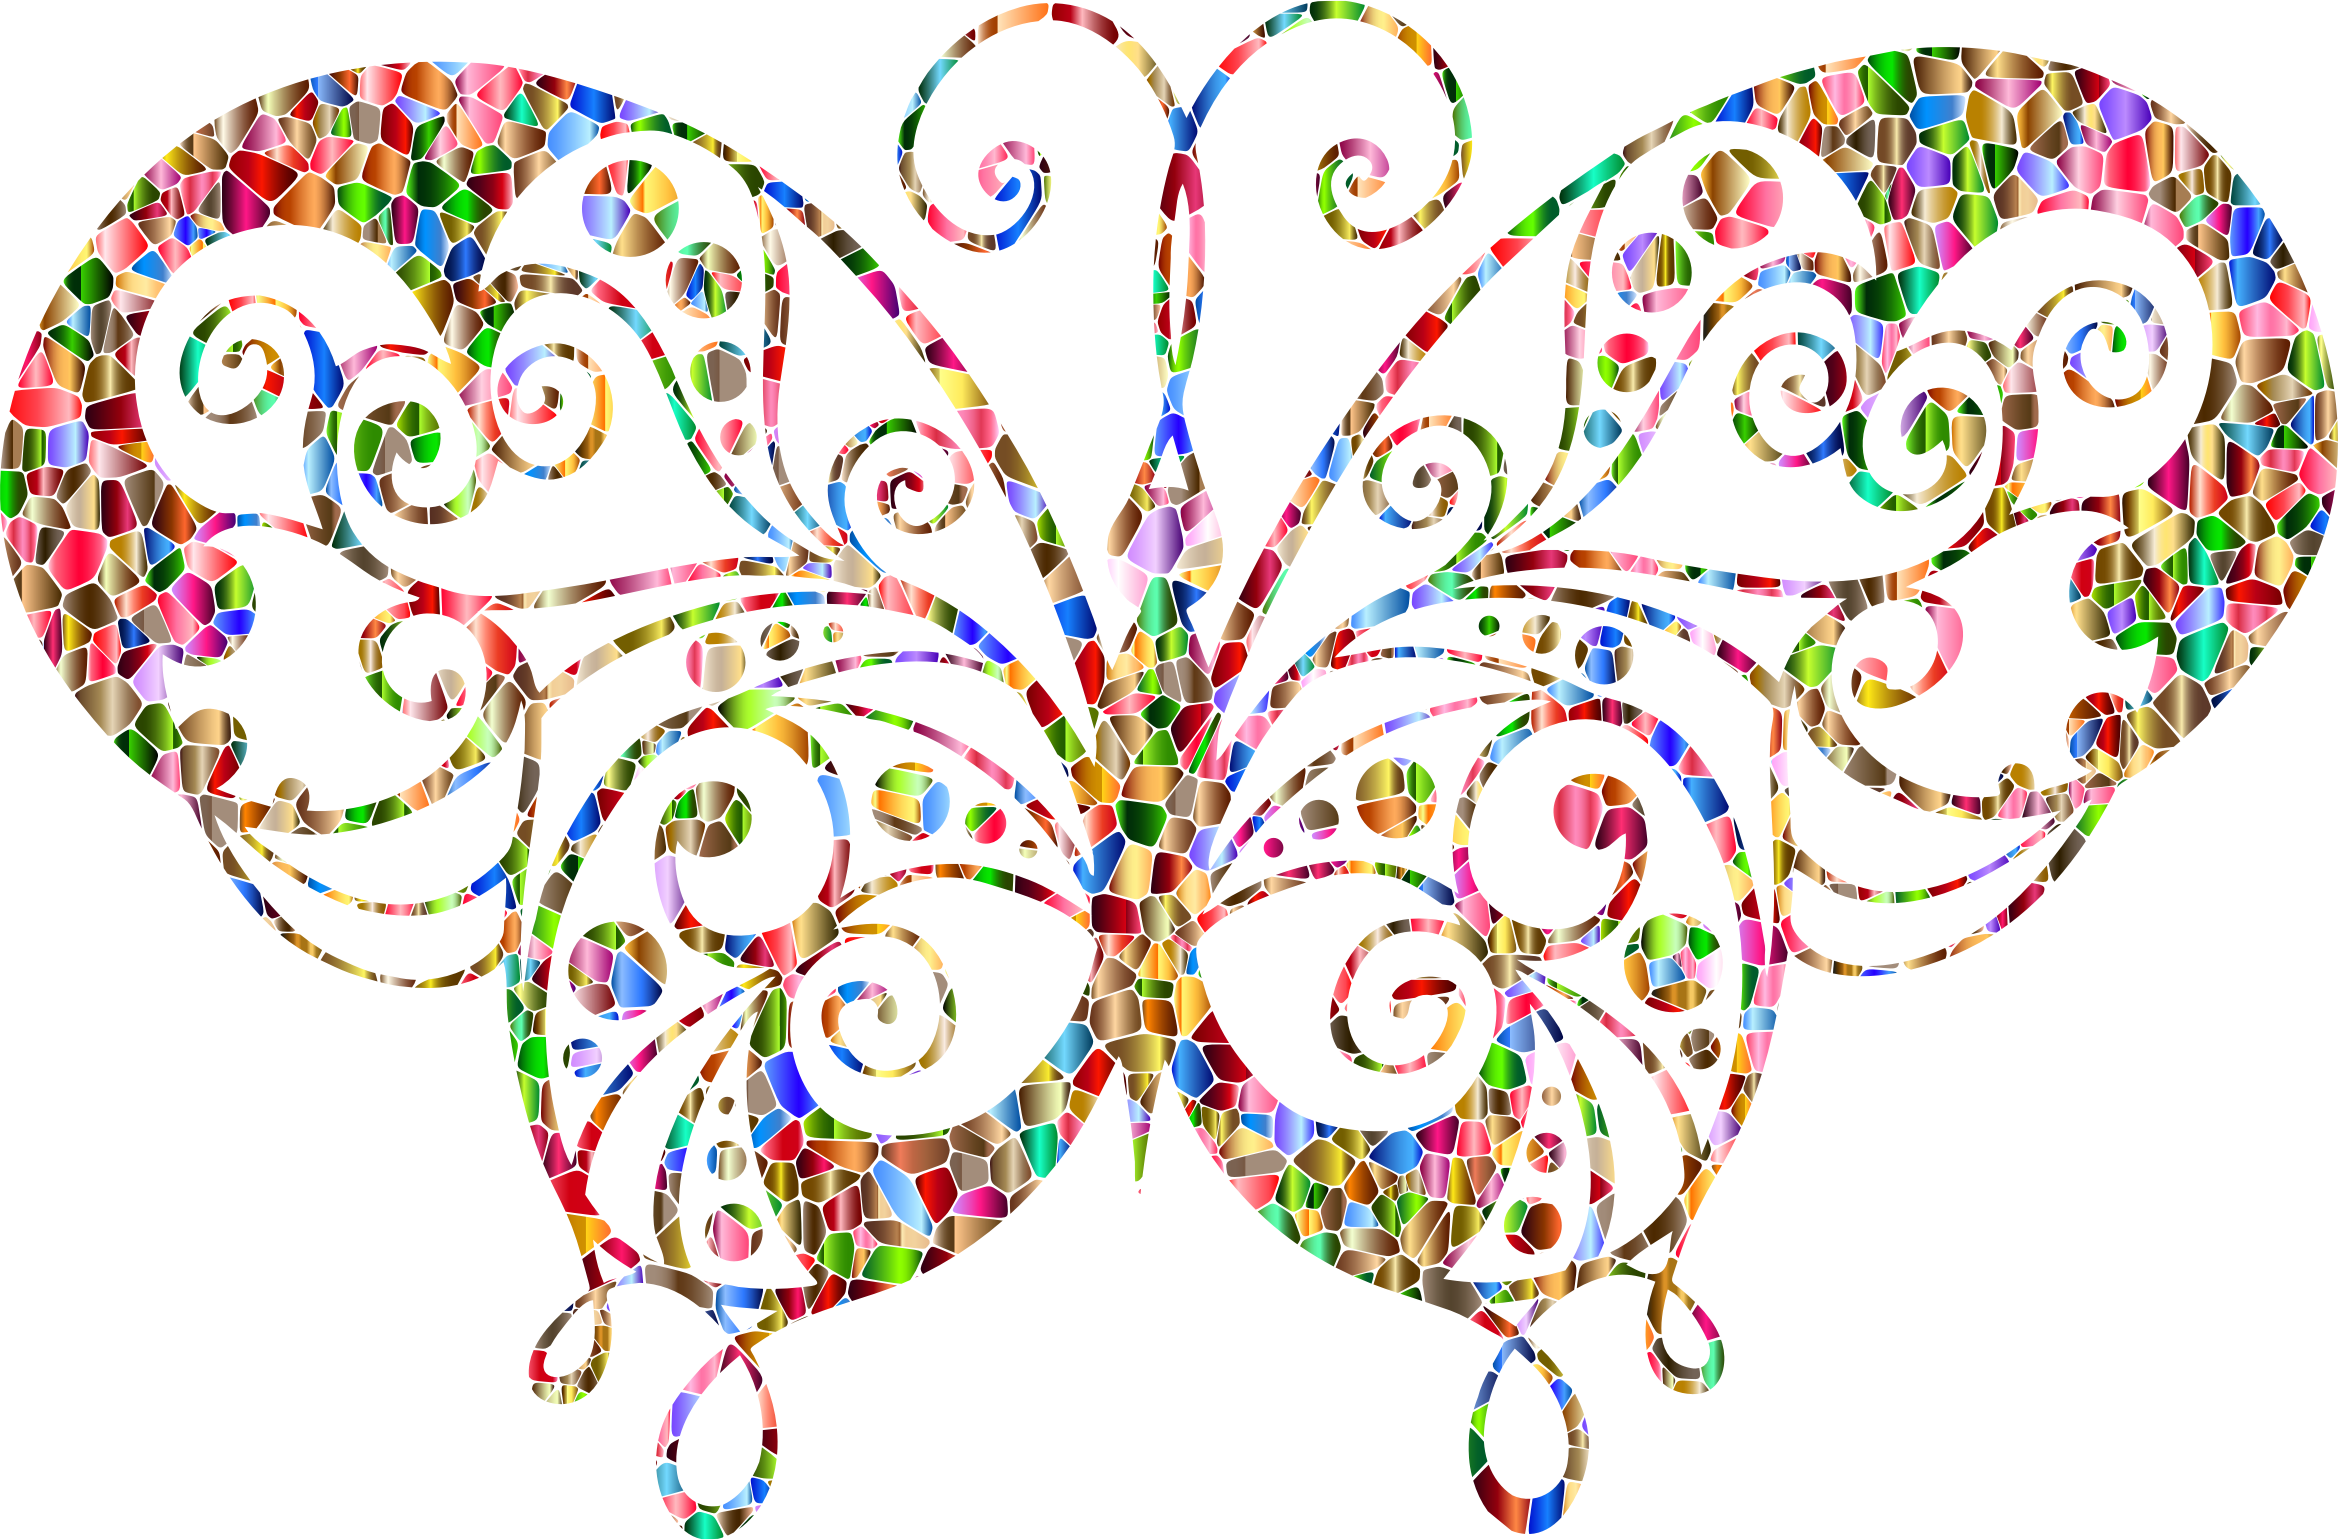 Flourish clipart small. Chromatic tiled butterfly silhouette